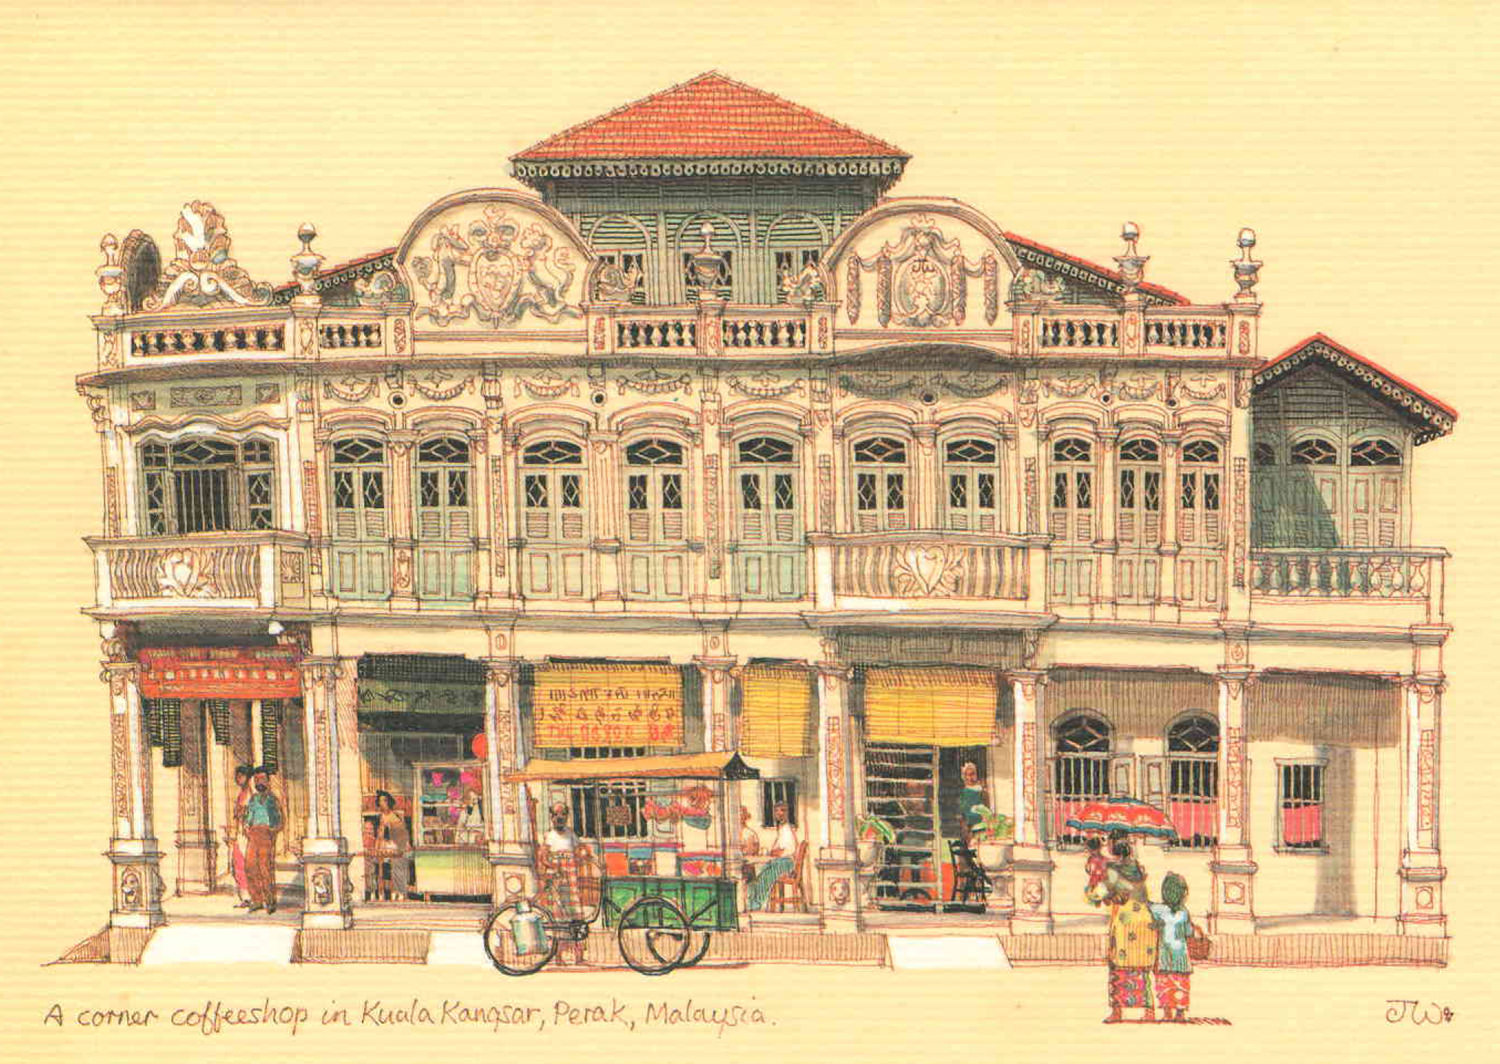 8 Postcards On Life And Colonial Architecture In Malaya